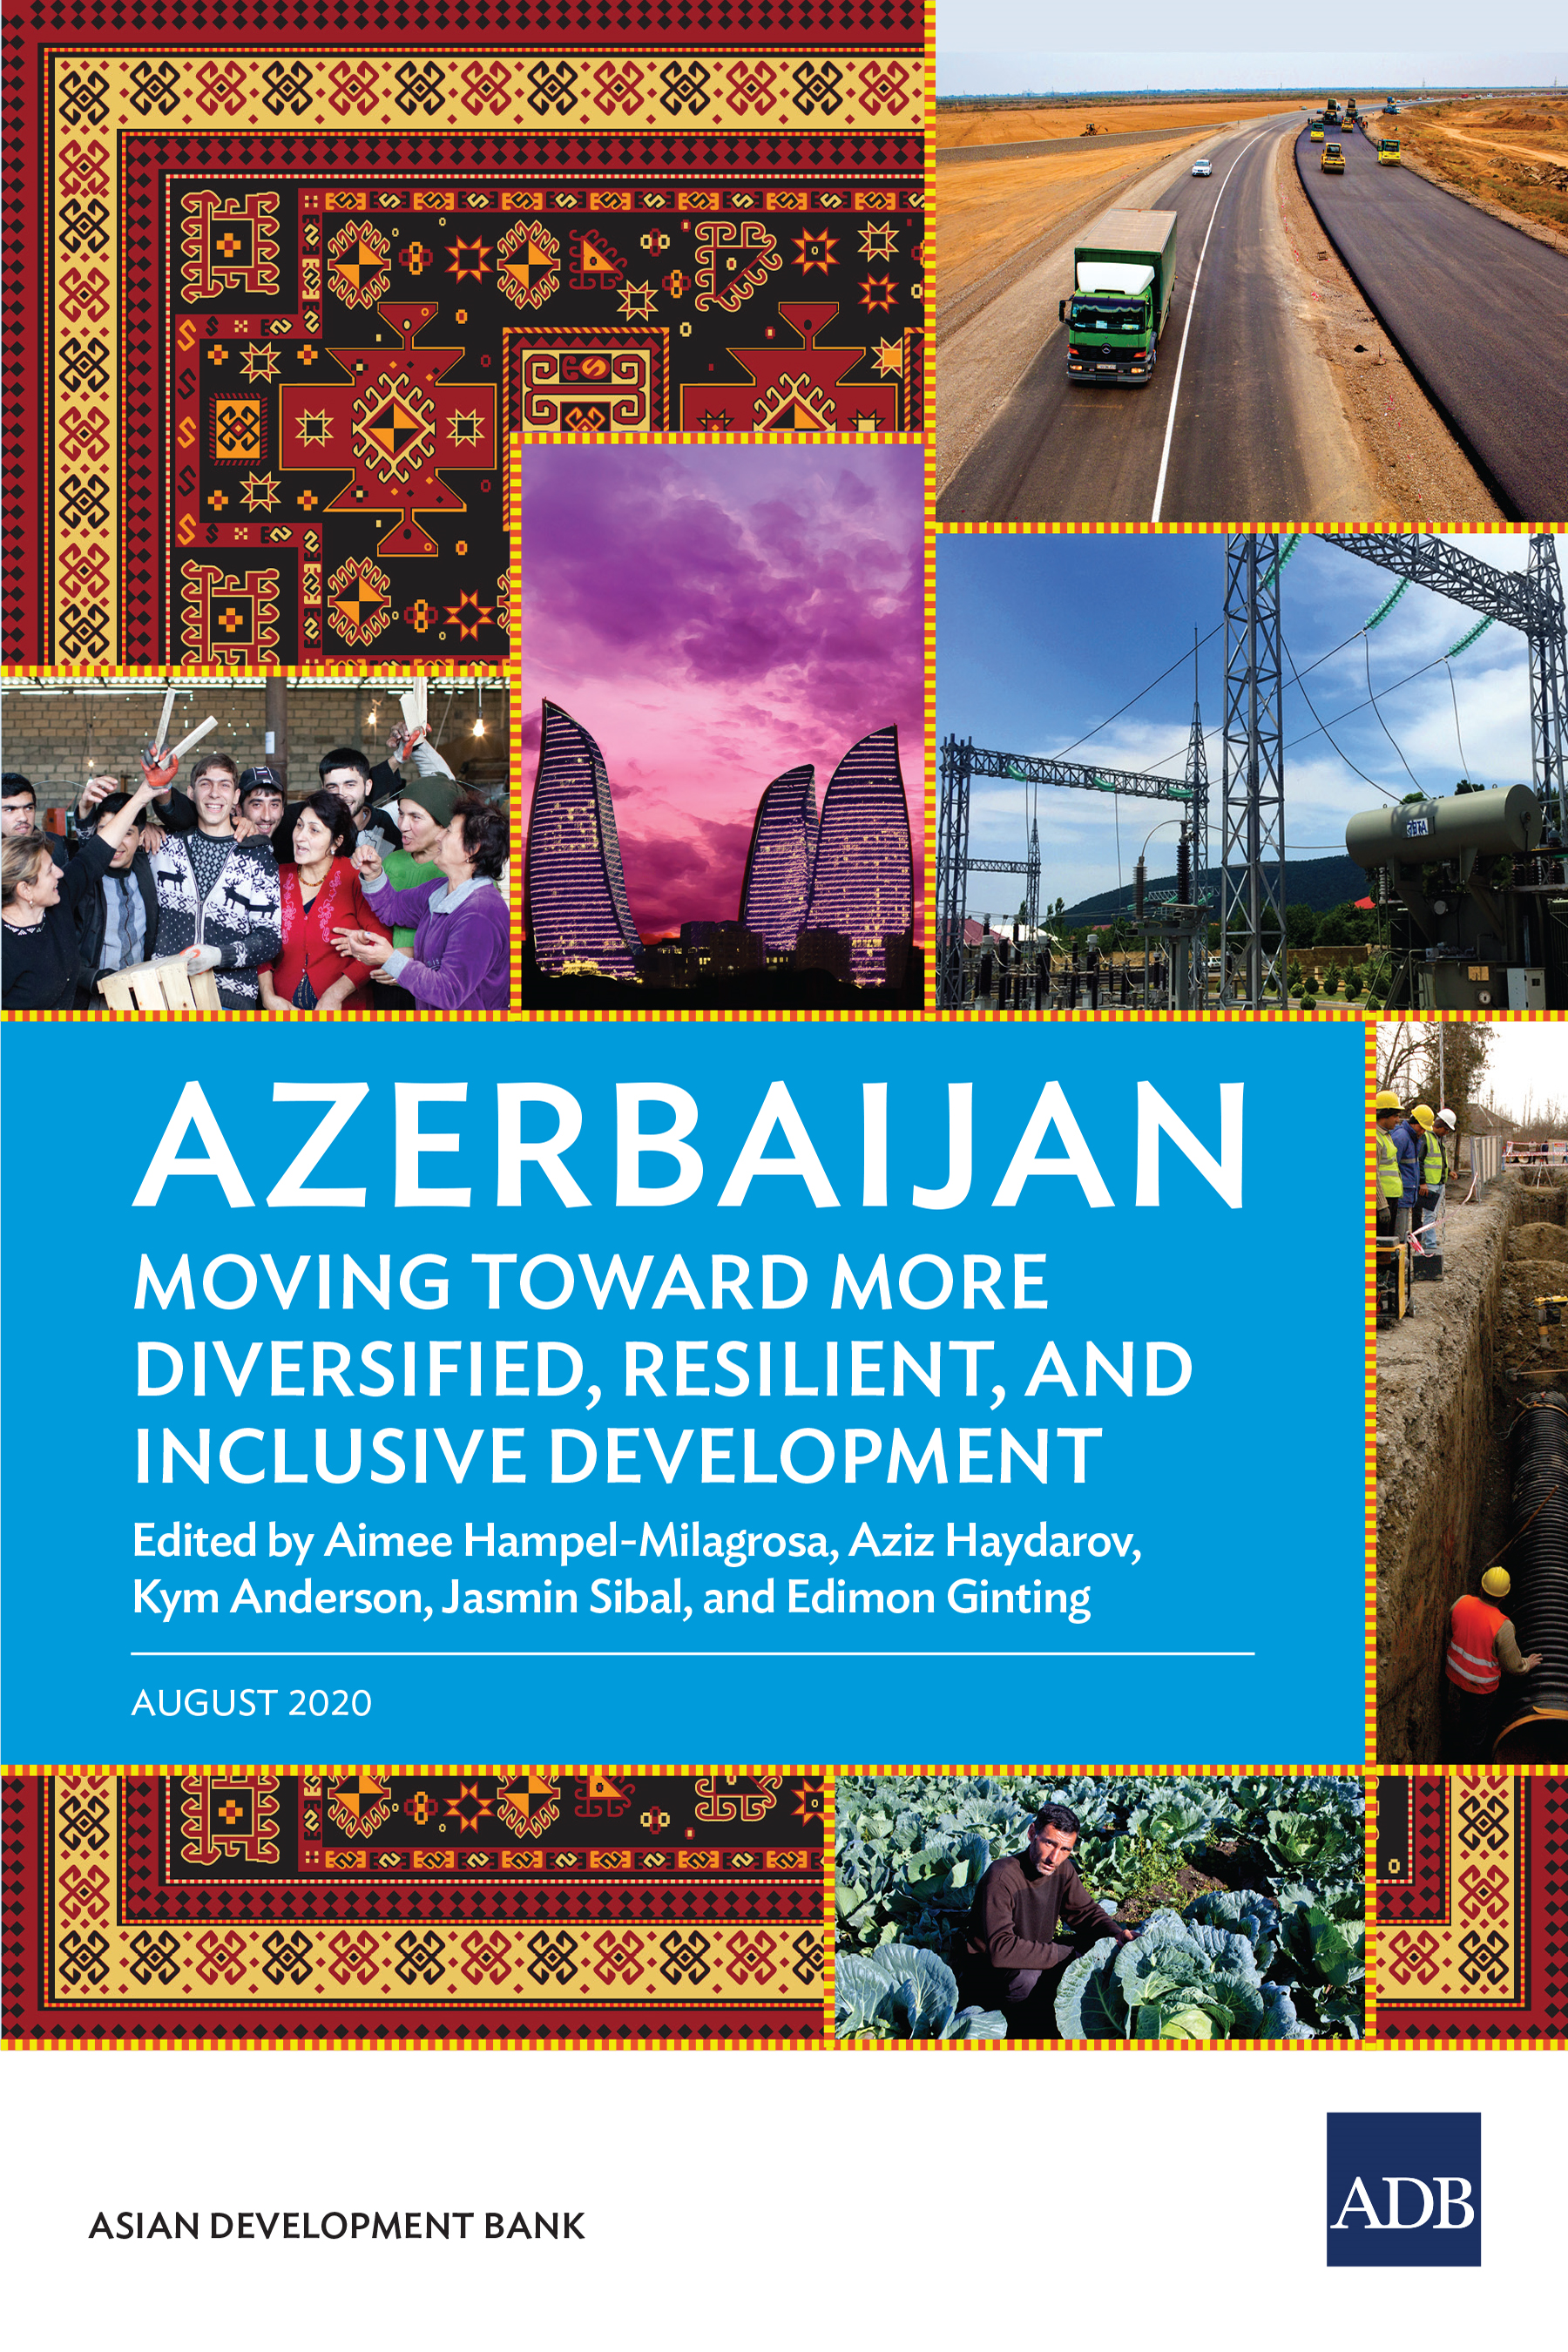 Azerbaijan: Moving Toward More Diversified, Resilient, and Inclusive Development